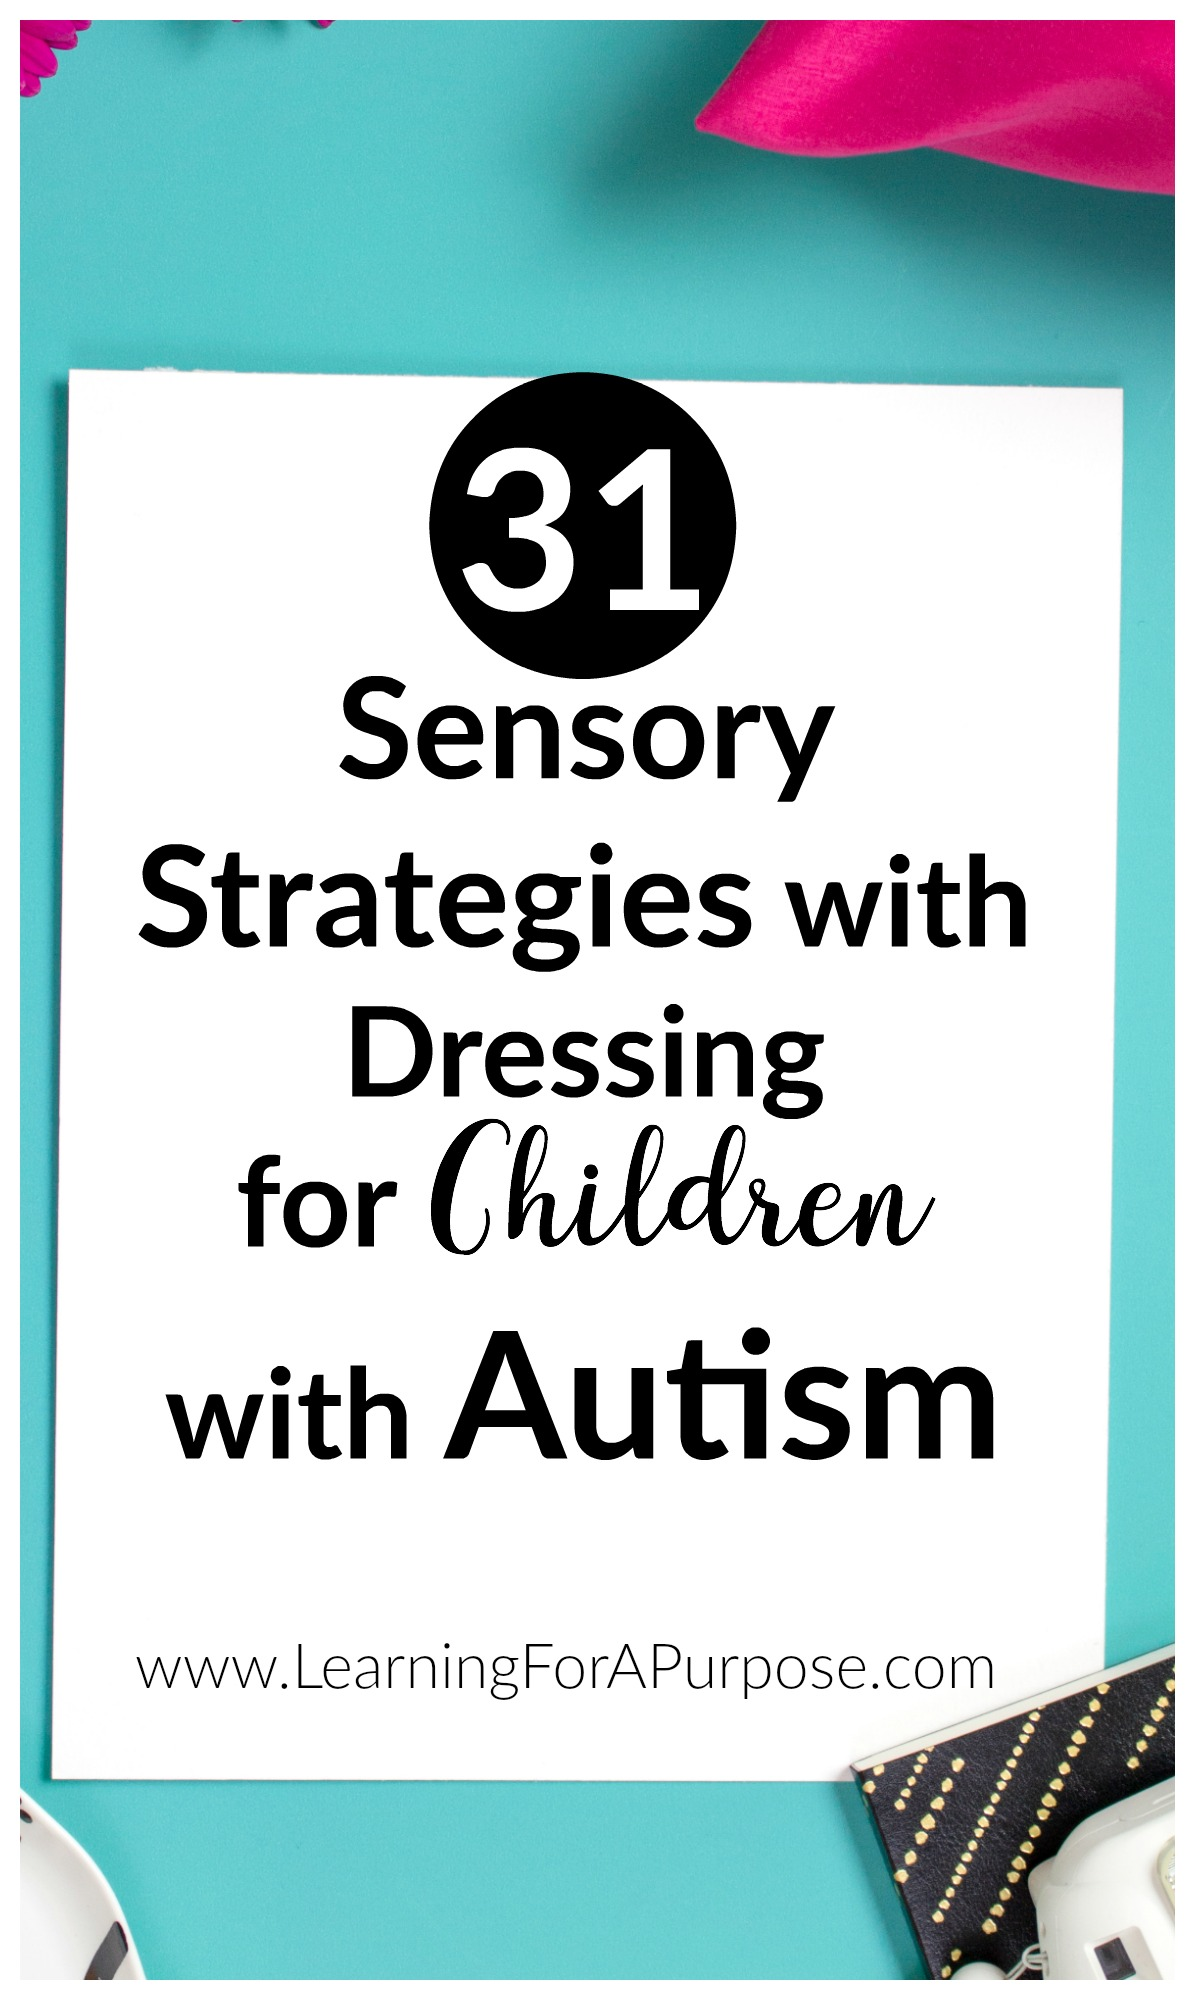 31 Sensory Strategies with Dressing for Children with Autism